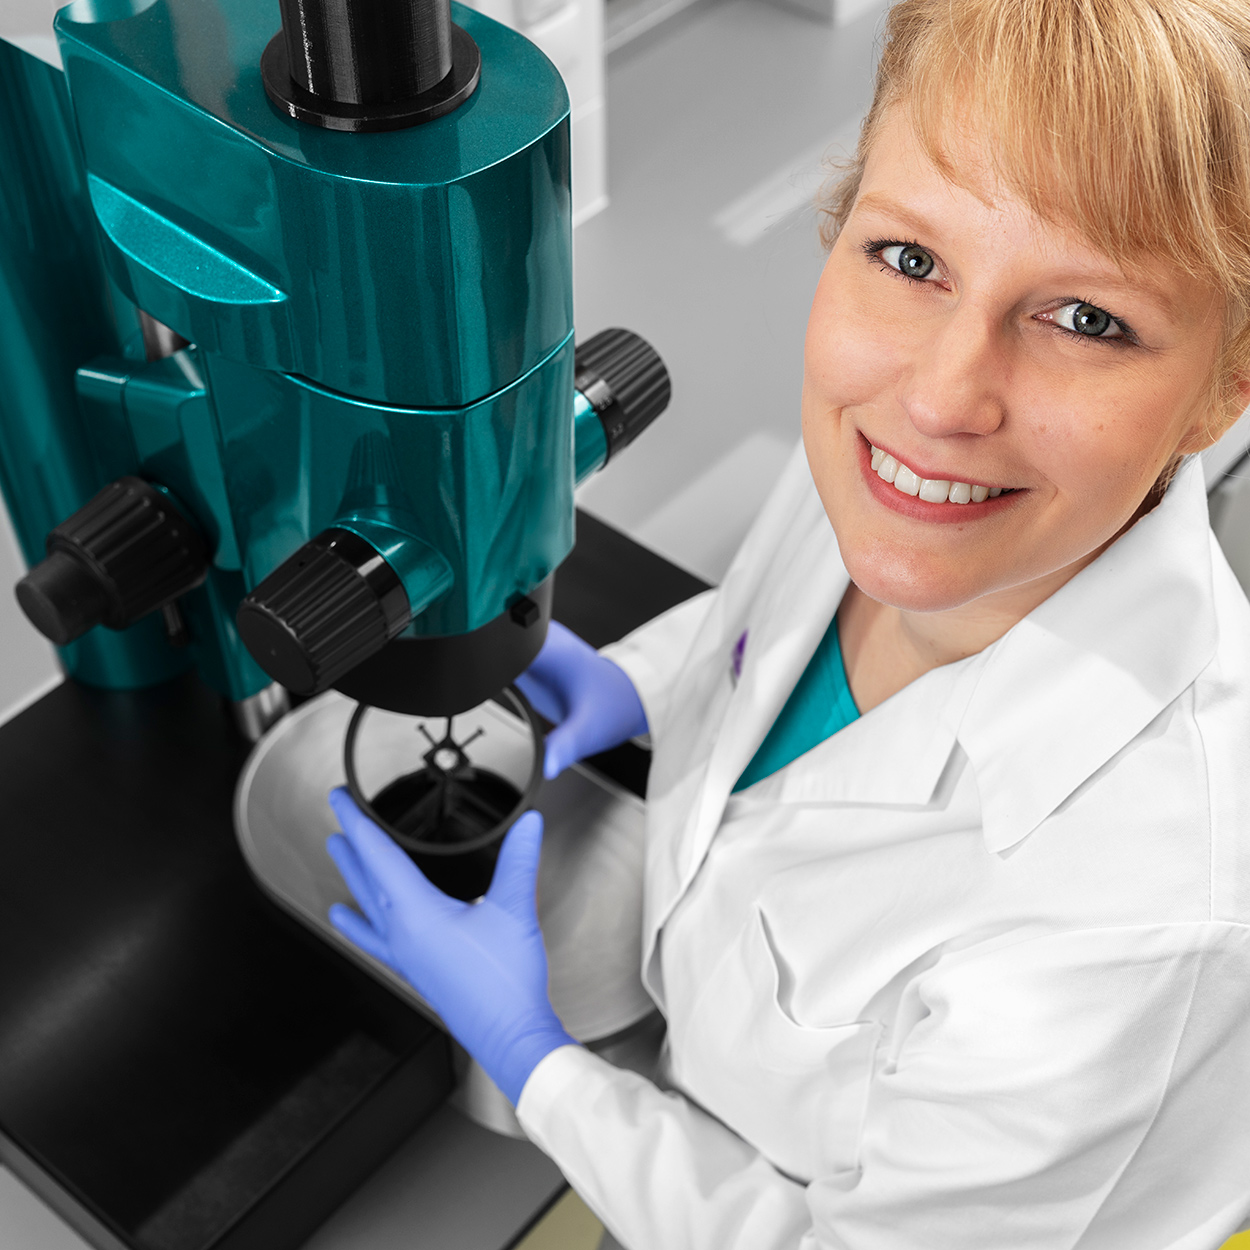 Service contracts for the UltraMicroscopes